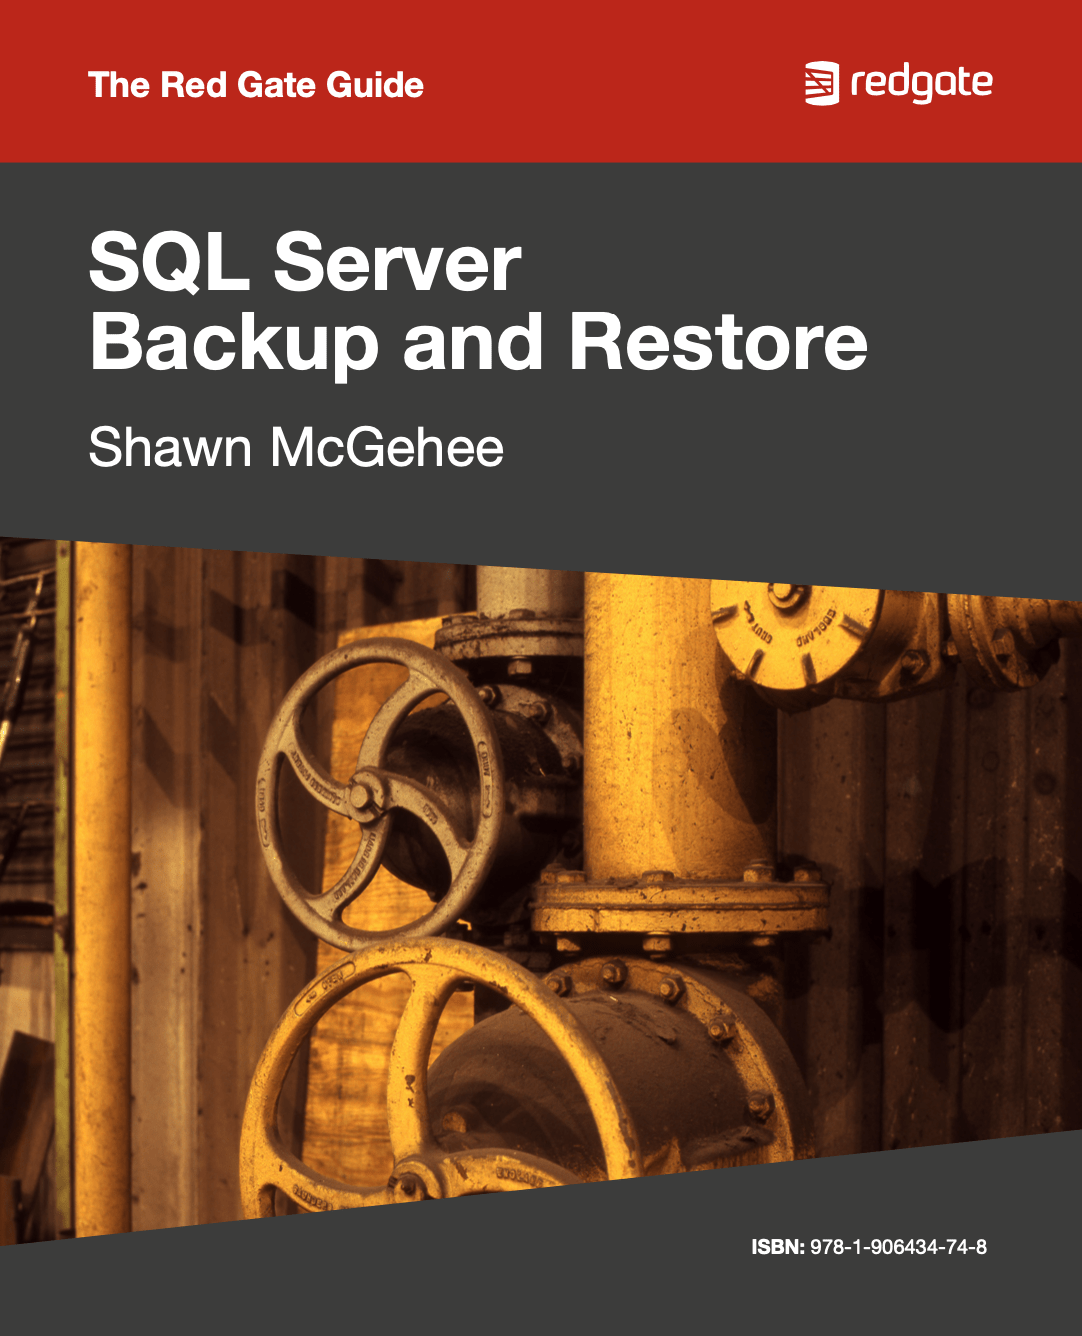 SQL Server Backup and Restore eBook cover